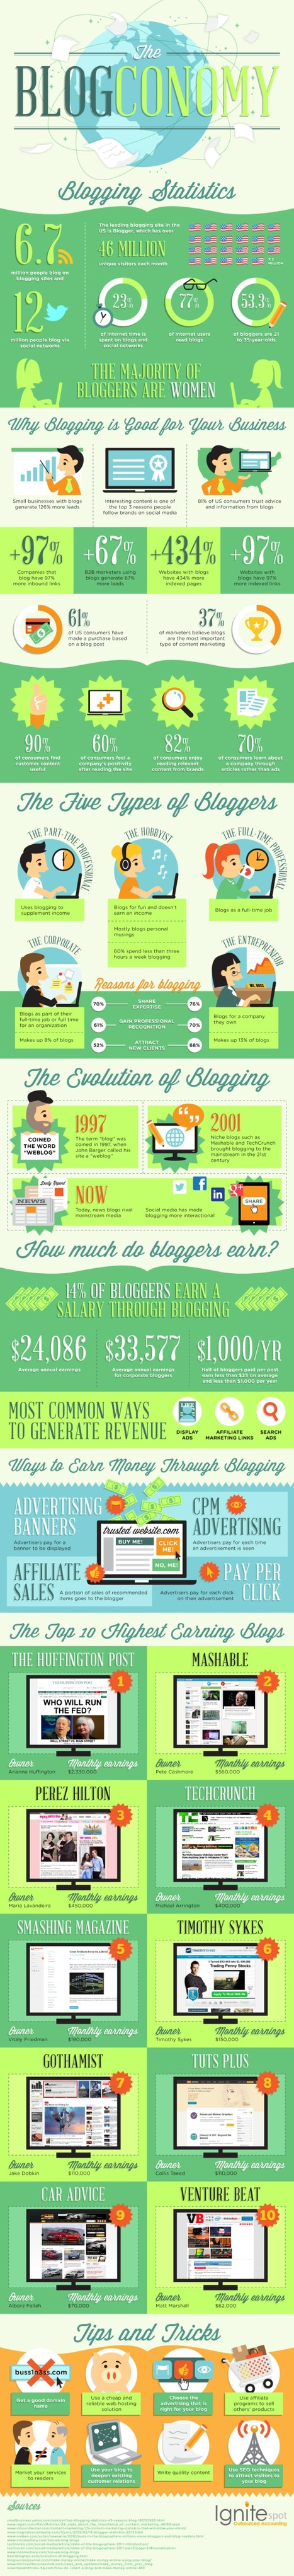 Infographic: The Blogconomy and Blogging Stats | Global Growth Relations | Scoop.it